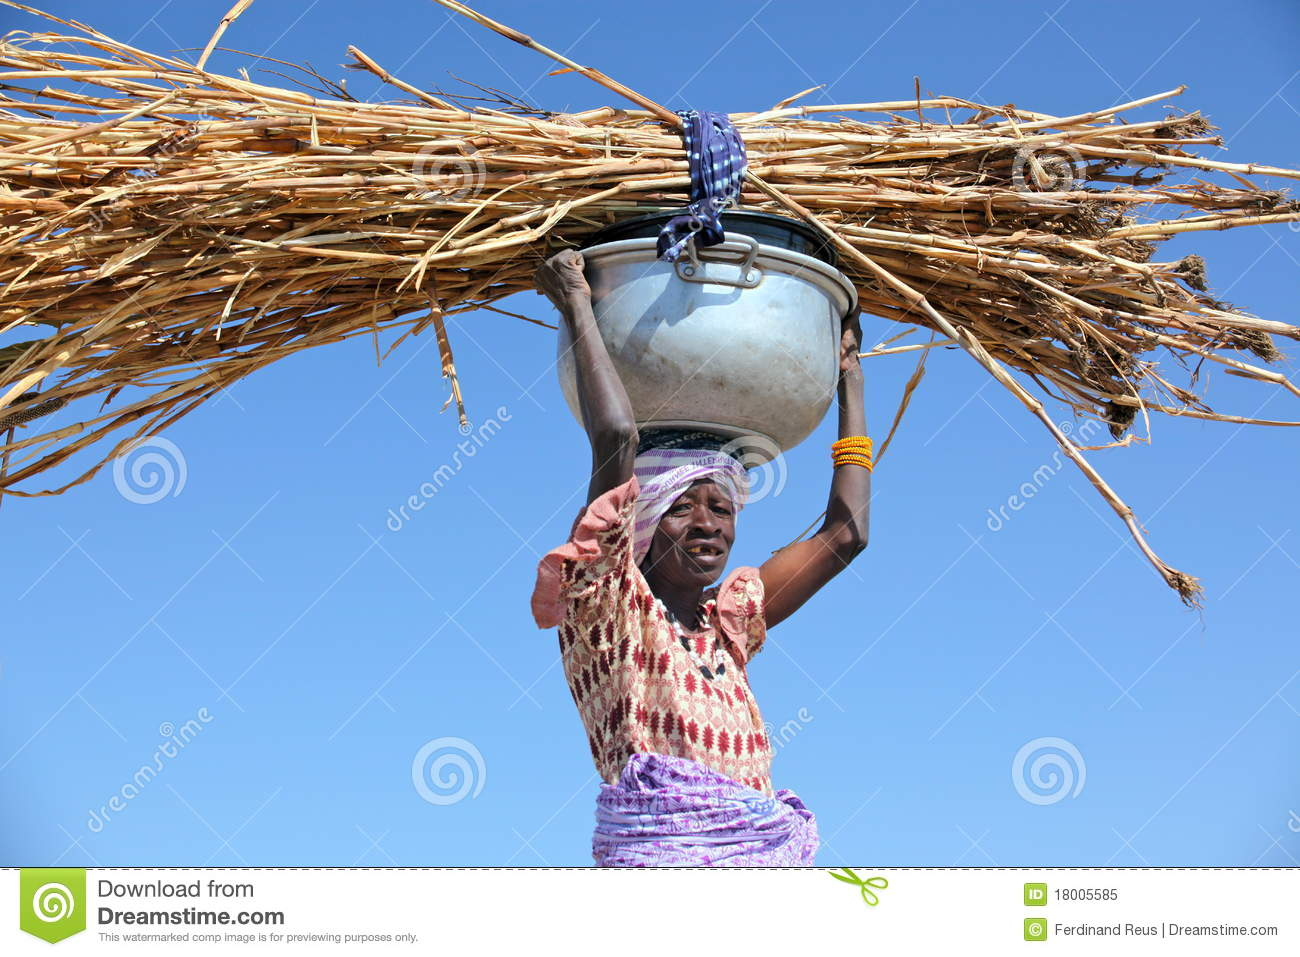 Woman carrying straw